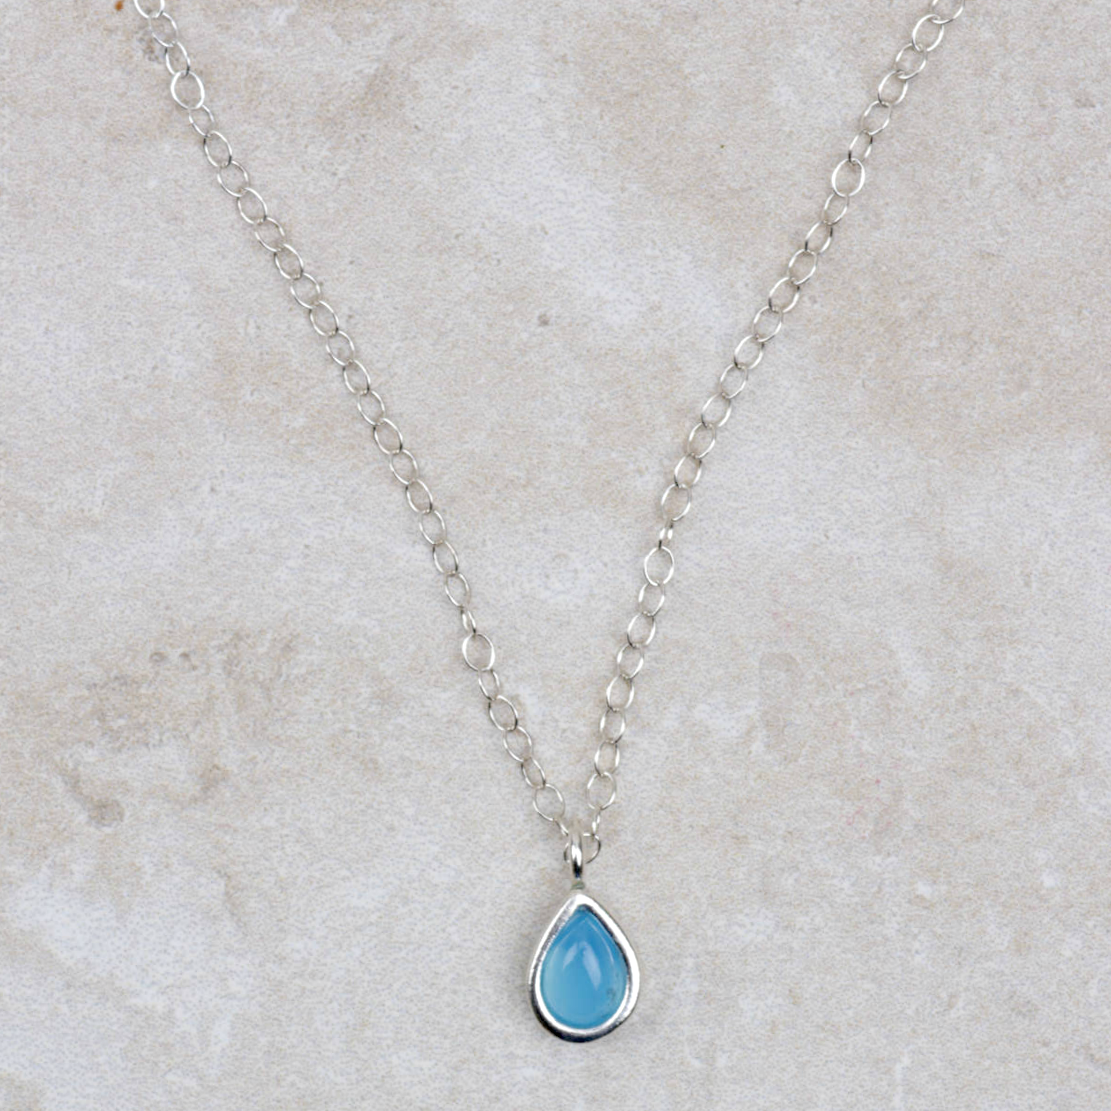 Raindrop Pendant Necklace